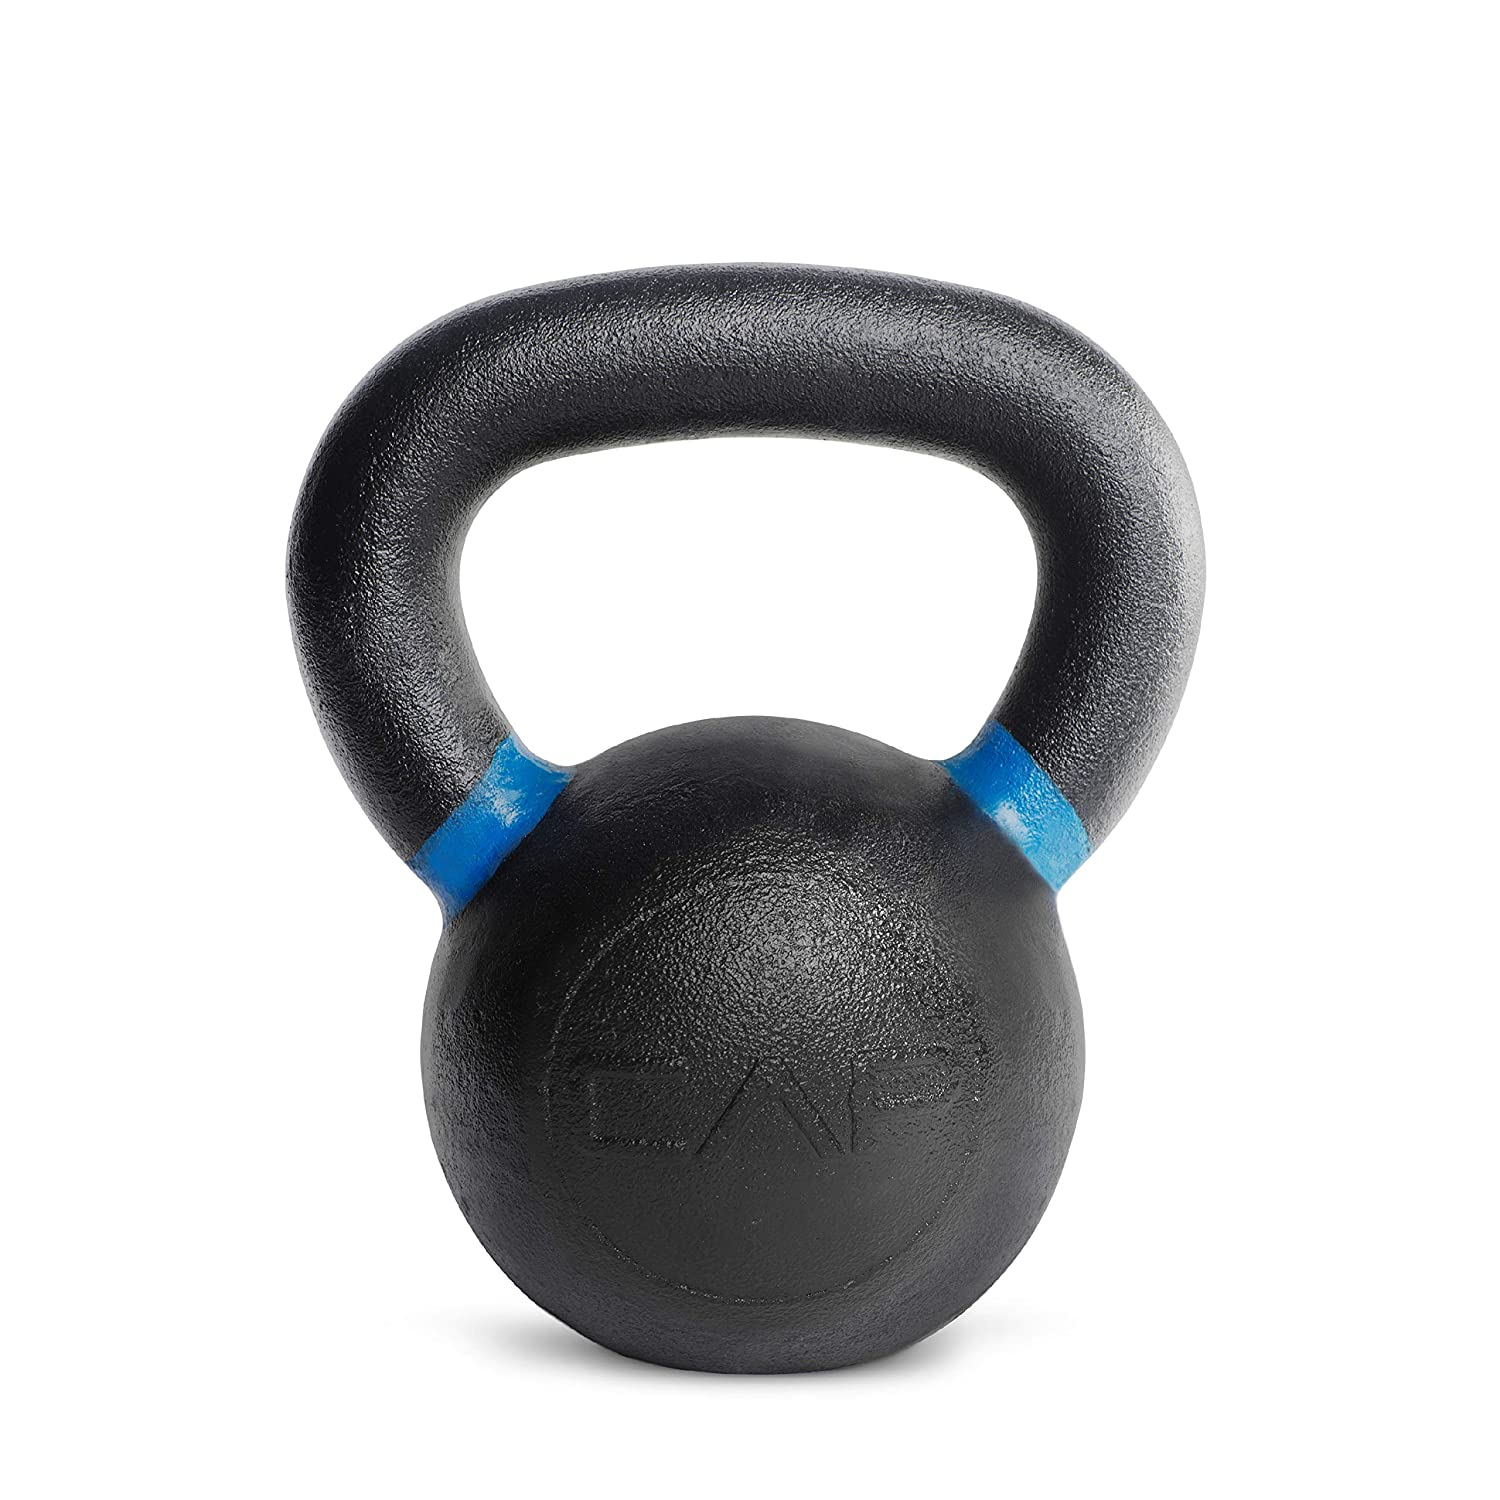 amazon com cap barbell cast iron competition kettlebell weight, 26amazon com cap barbell cast iron competition kettlebell weight, 26 pound, black blue sports \u0026 outdoors